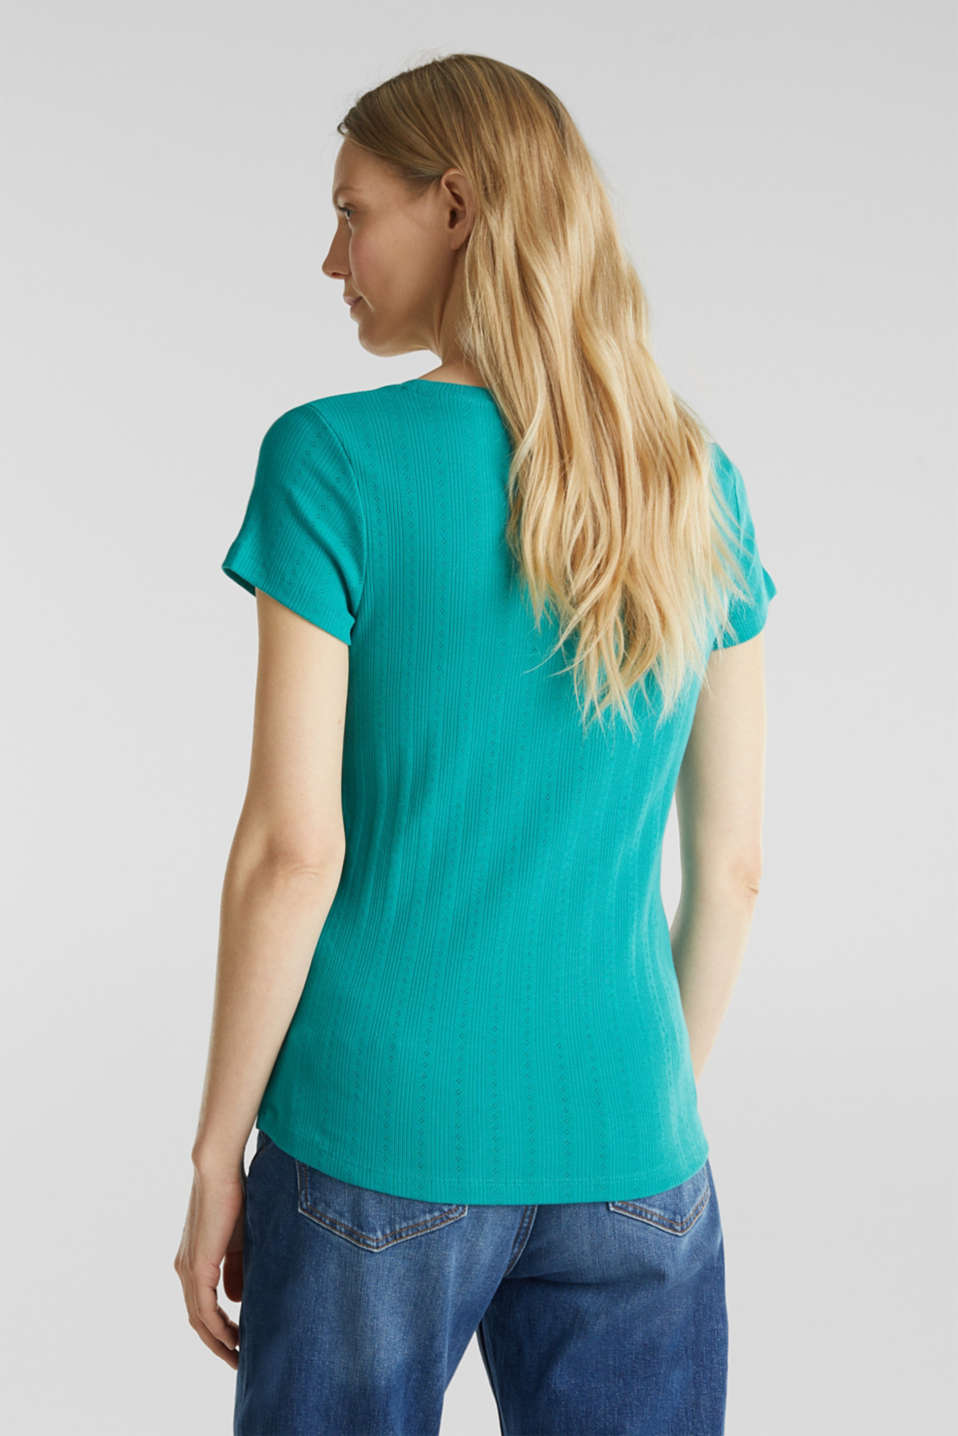 Openwork pattern top made of organic cotton, TEAL GREEN, detail image number 2